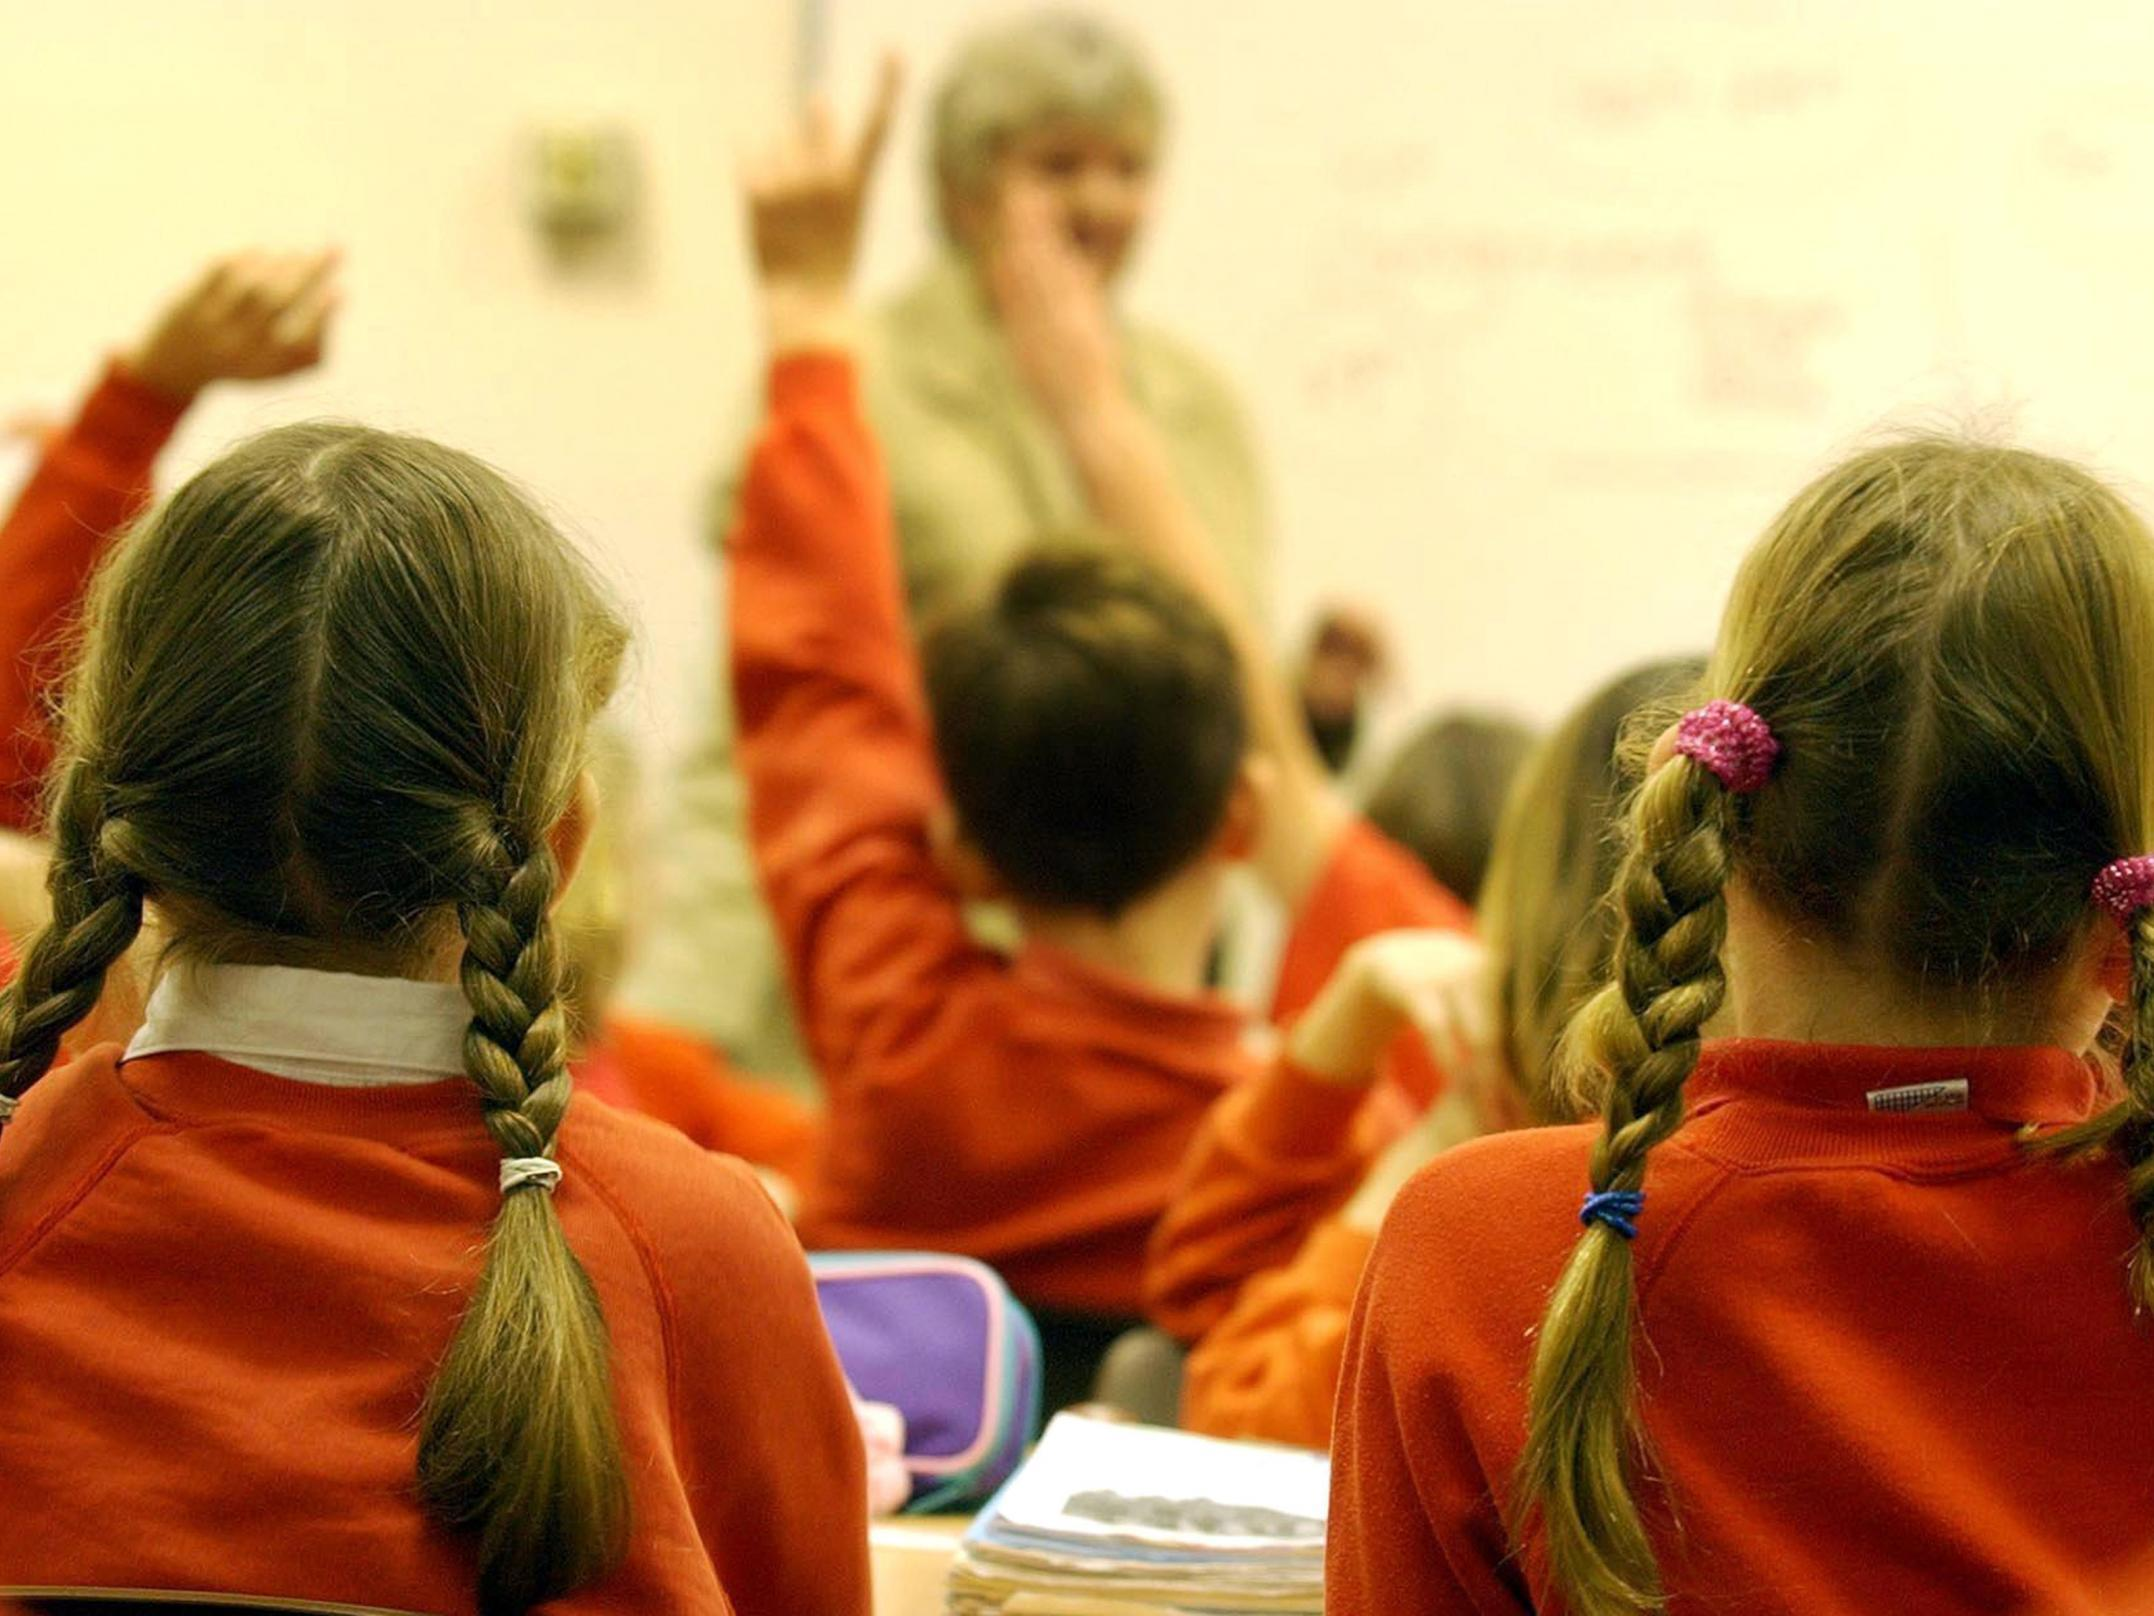 Primary School - latest news, breaking stories and comment